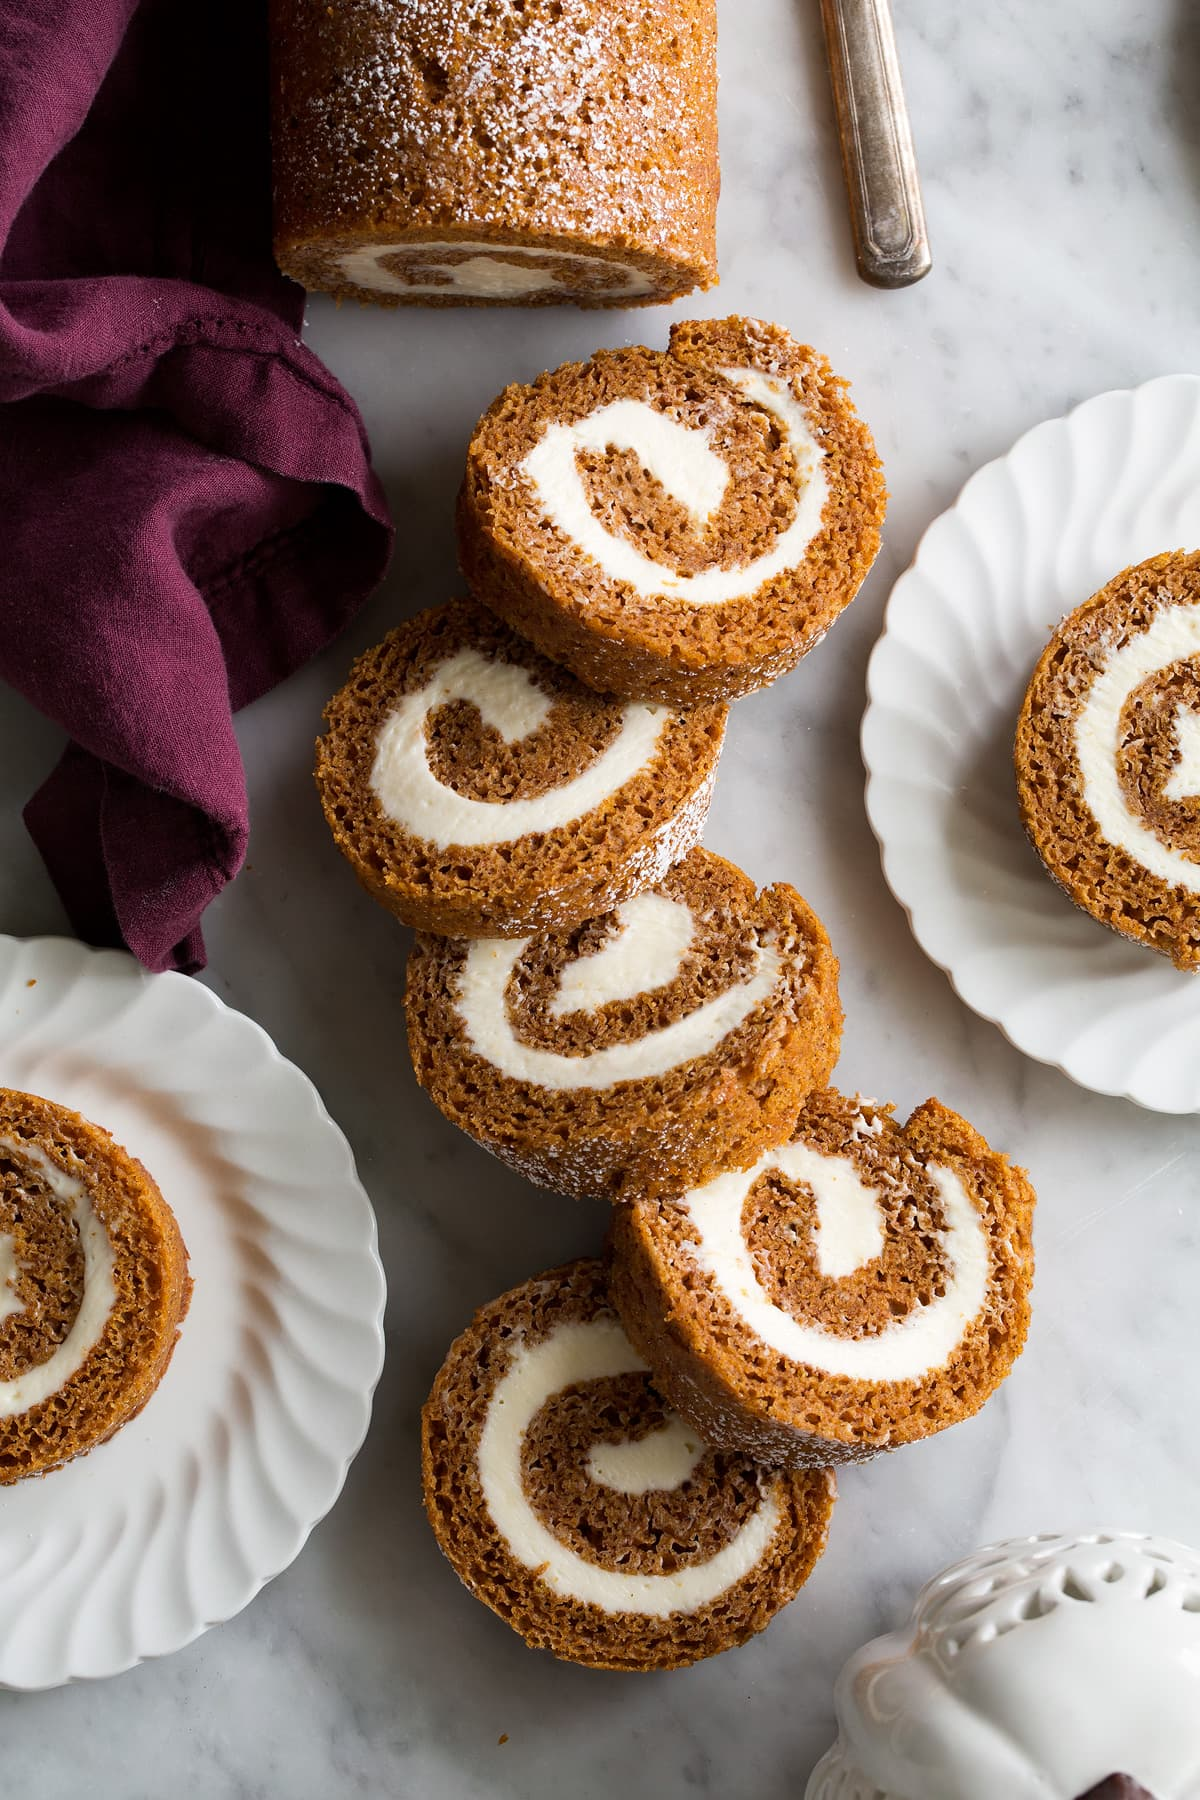 Sliced pumpkin roll on a marble surface.